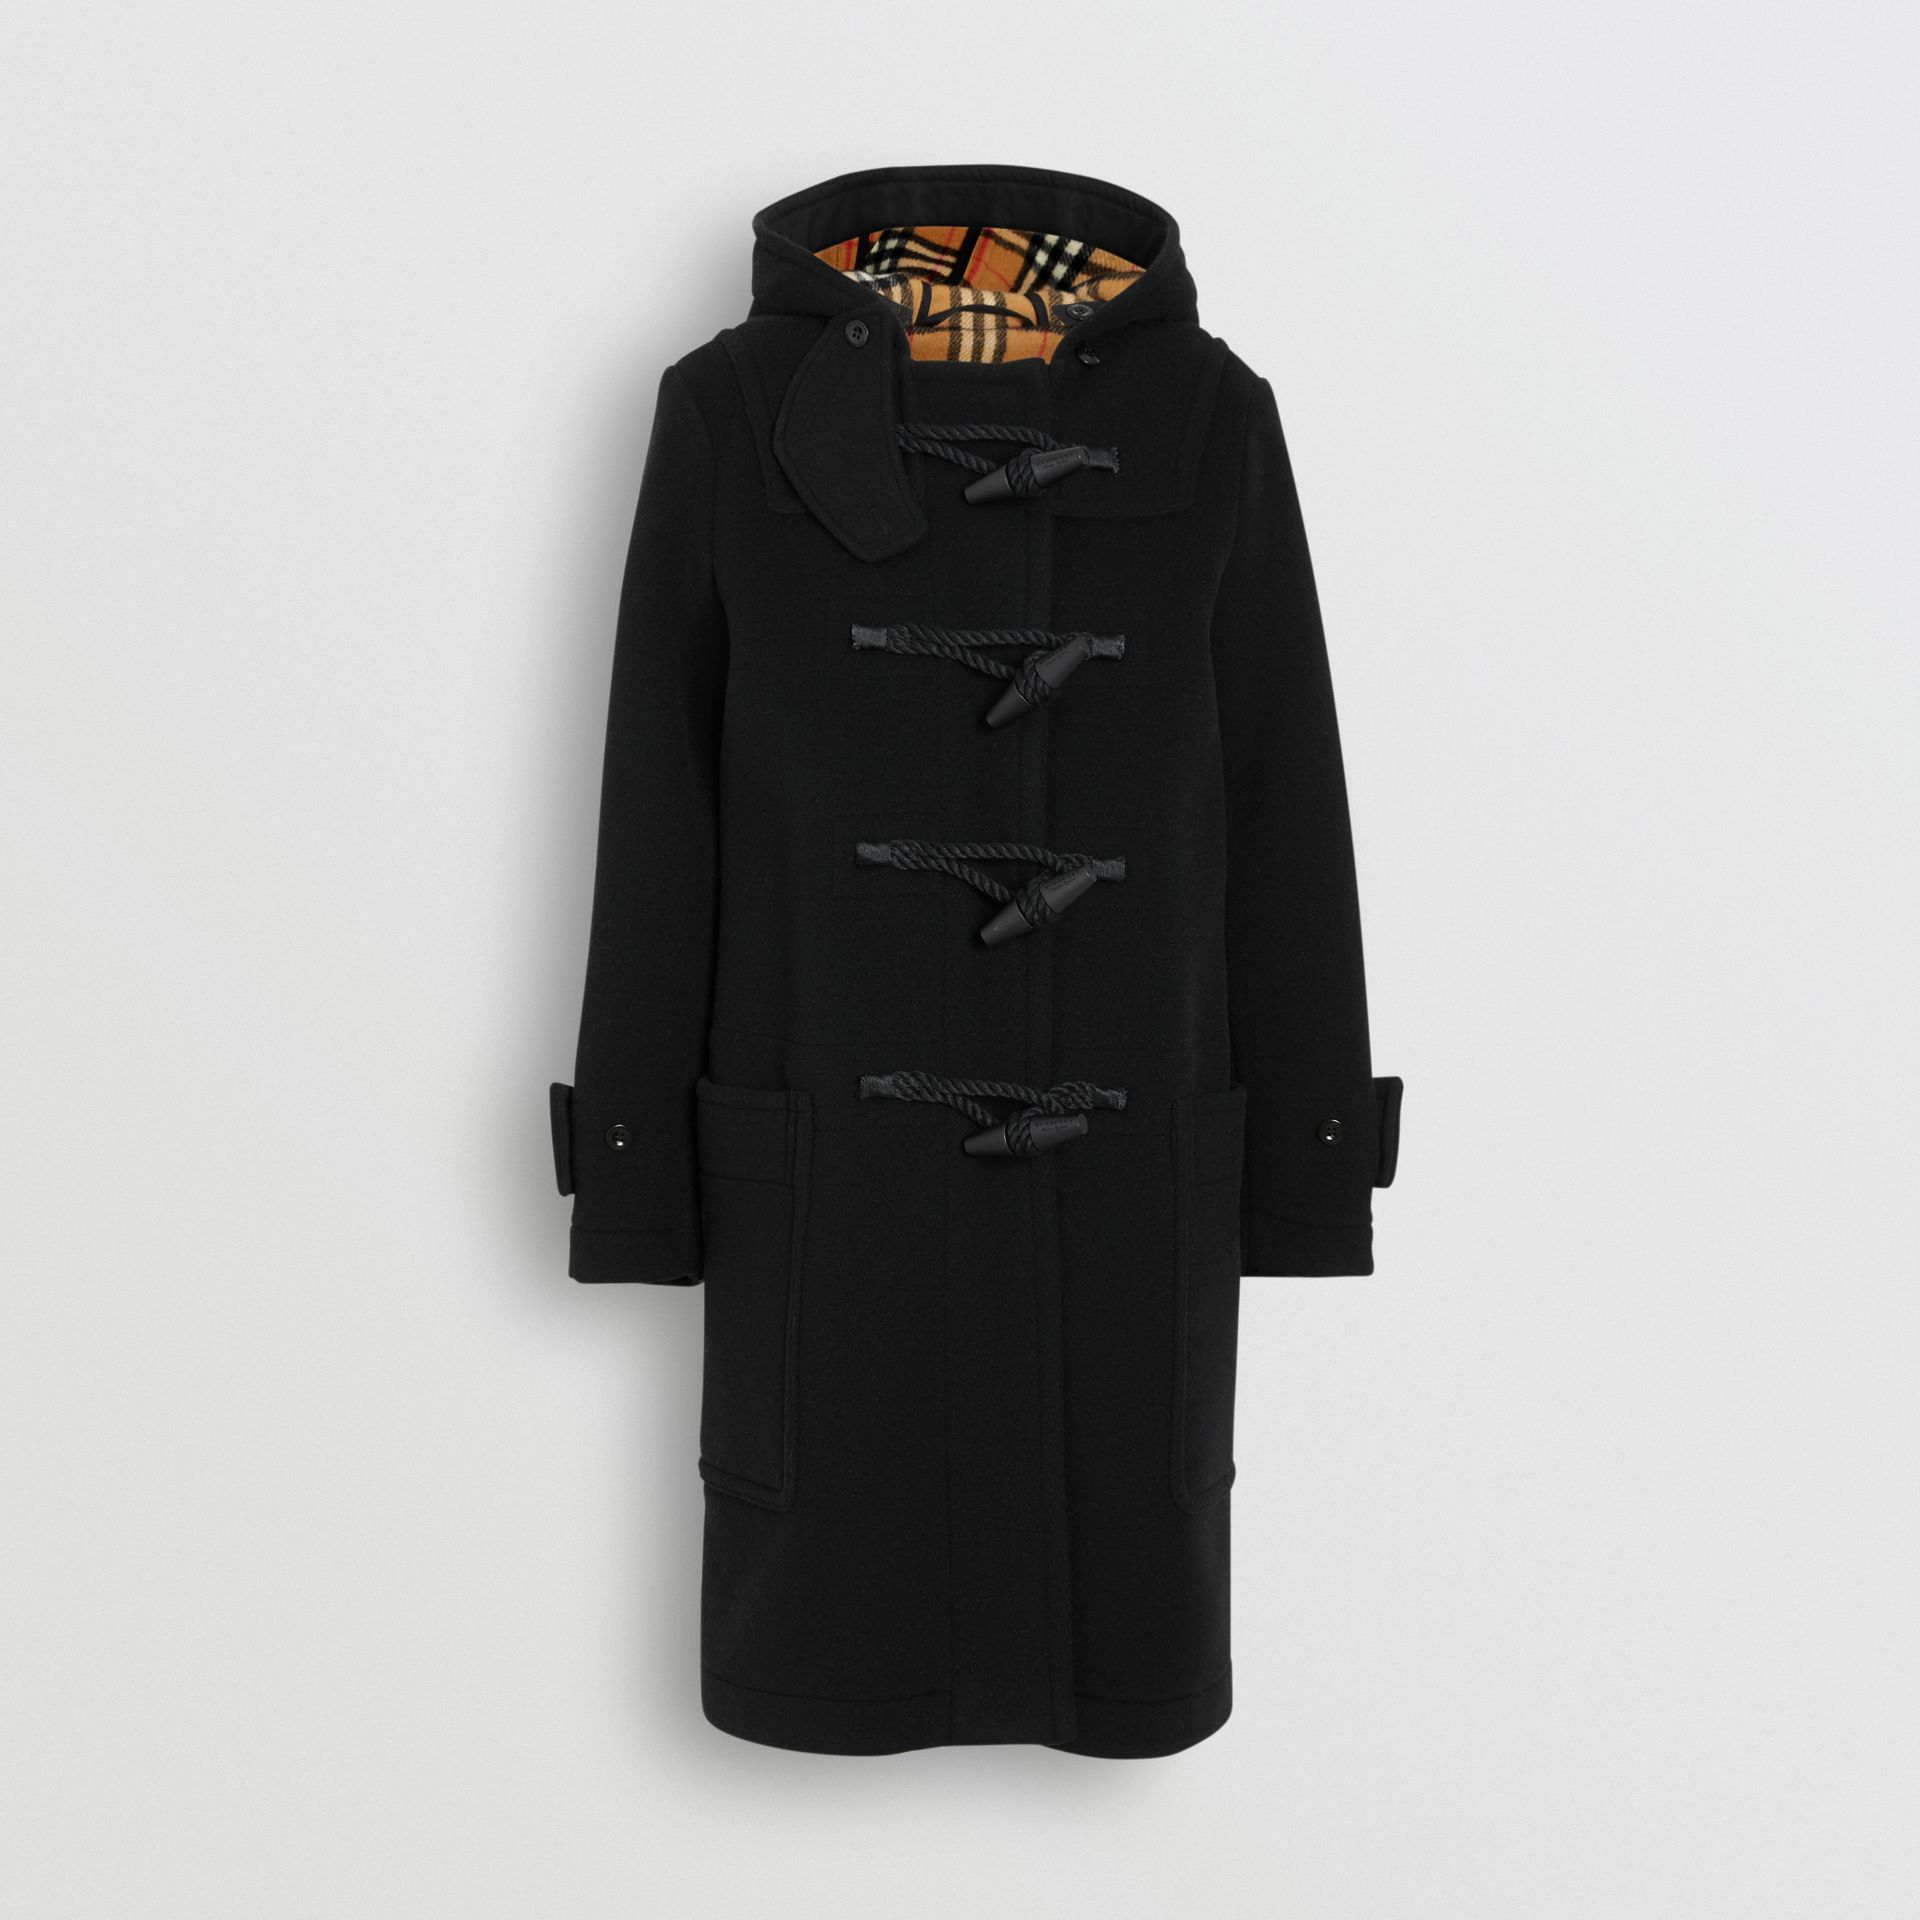 Wool Blend Duffle Coat in Black - Women | Burberry Hong Kong - gallery image 4